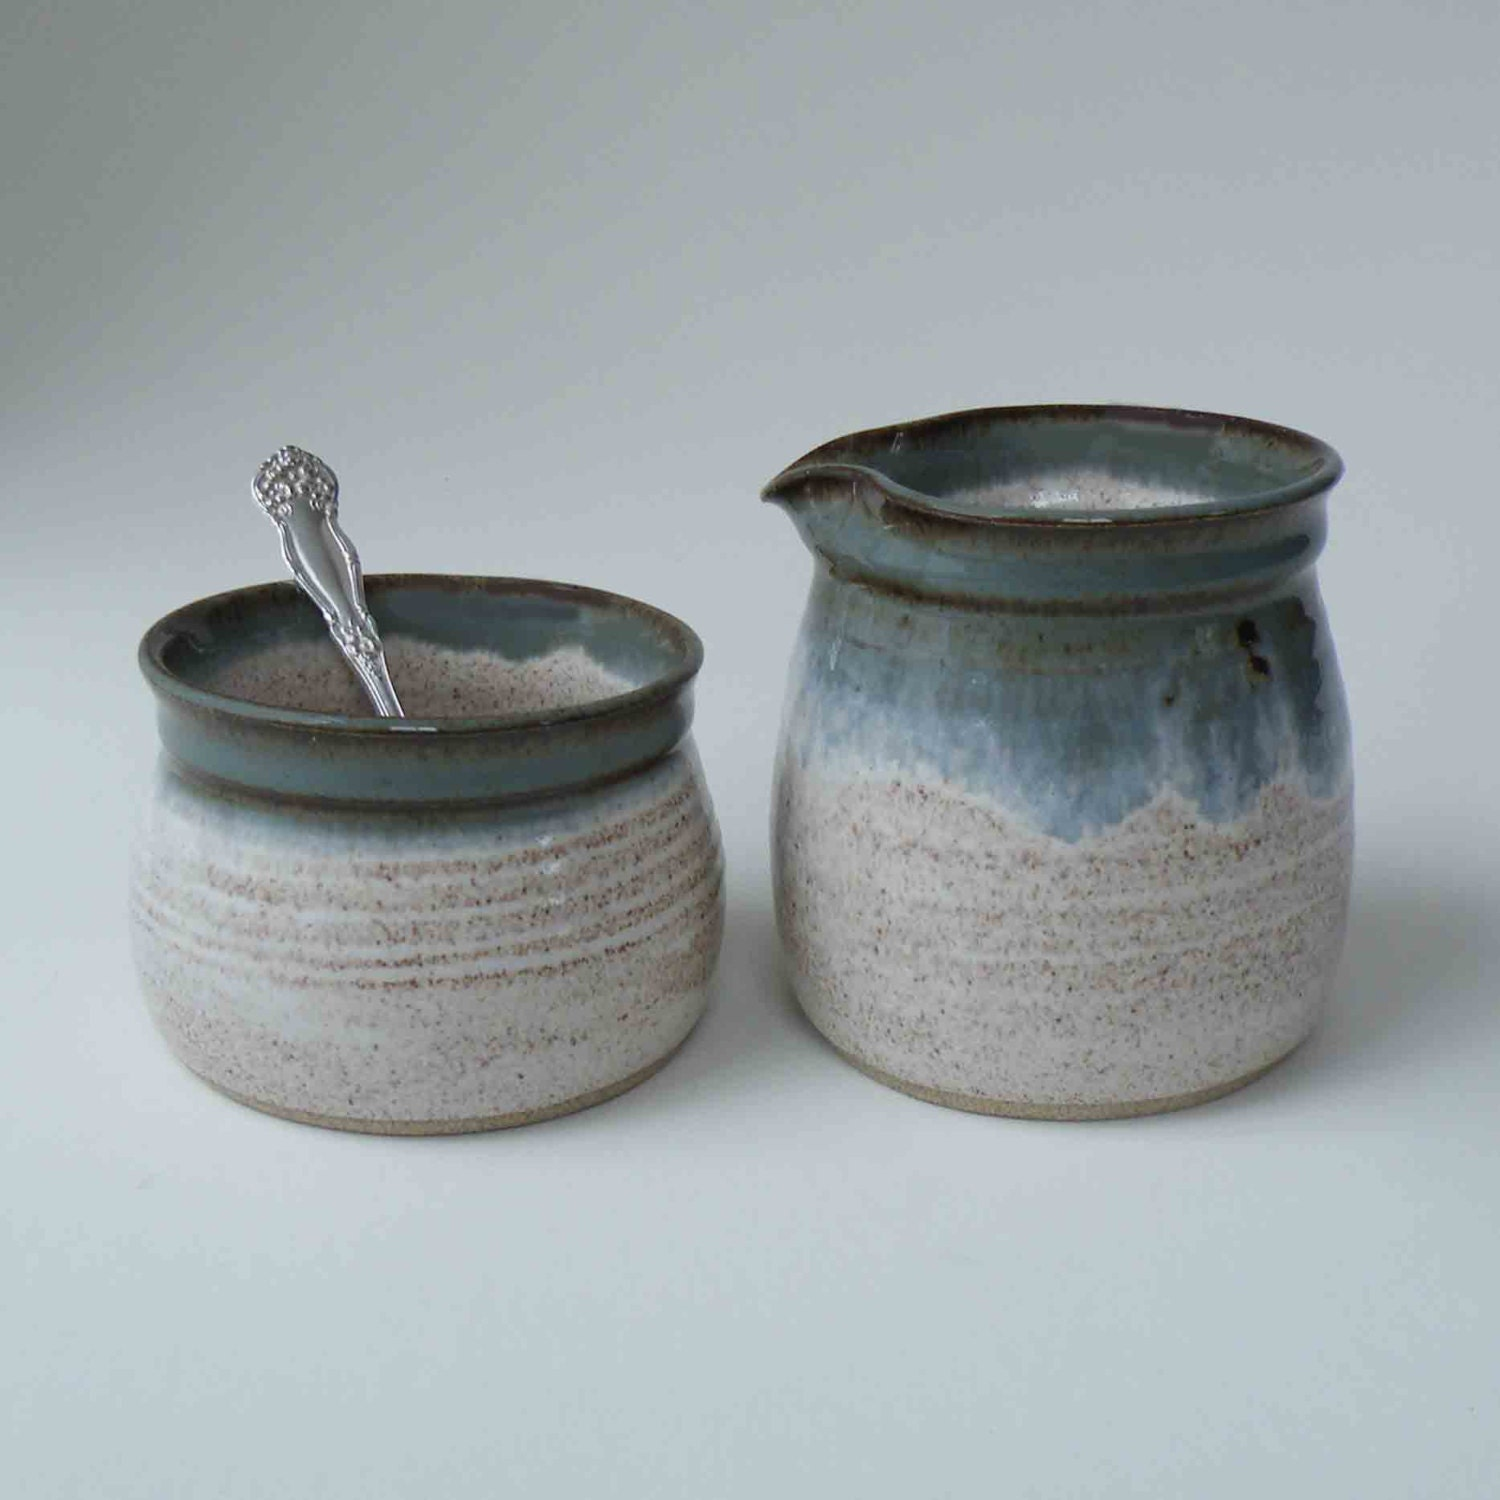 Wedding Gift - Creamer and Sugar Set with Silverplate Spoon -  Blue Gray and Speckled White Pottery Set of 2 - Sugar and Creamer Set